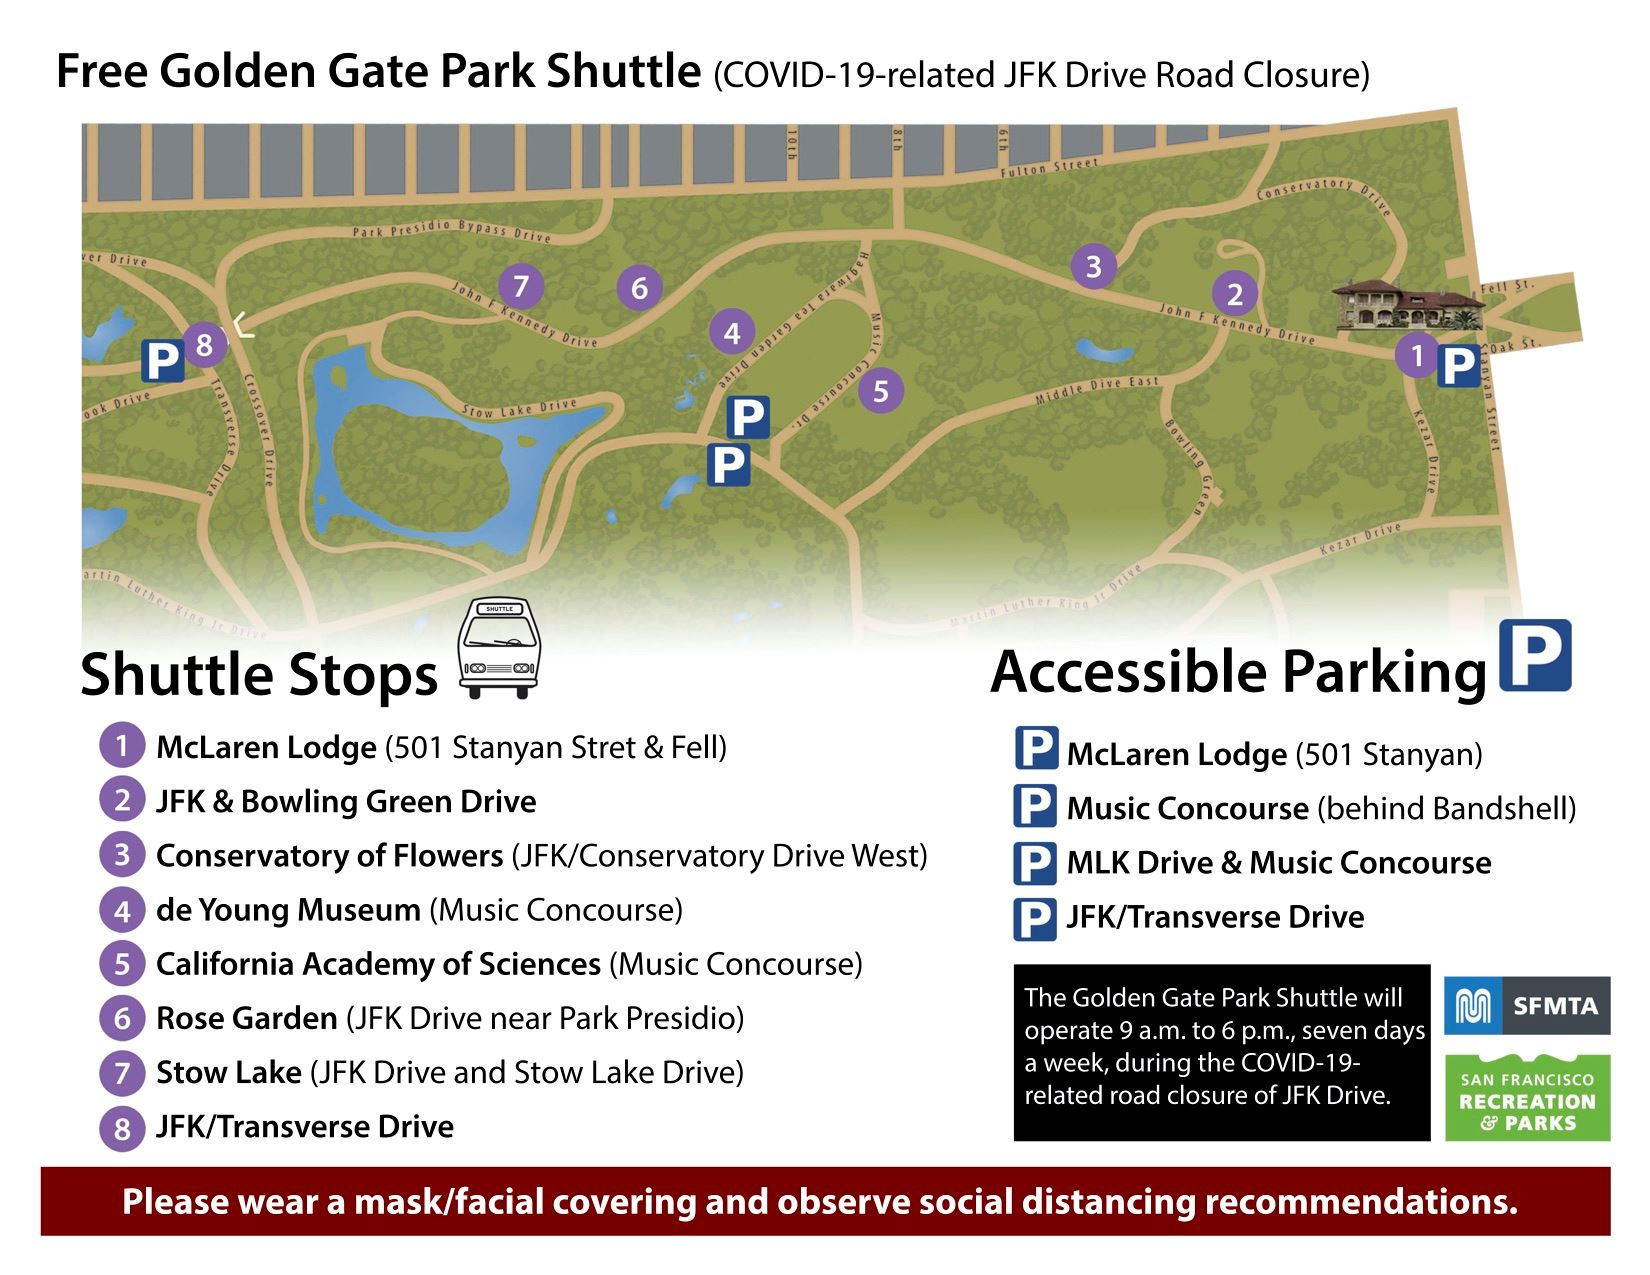 ggp shuttle map image